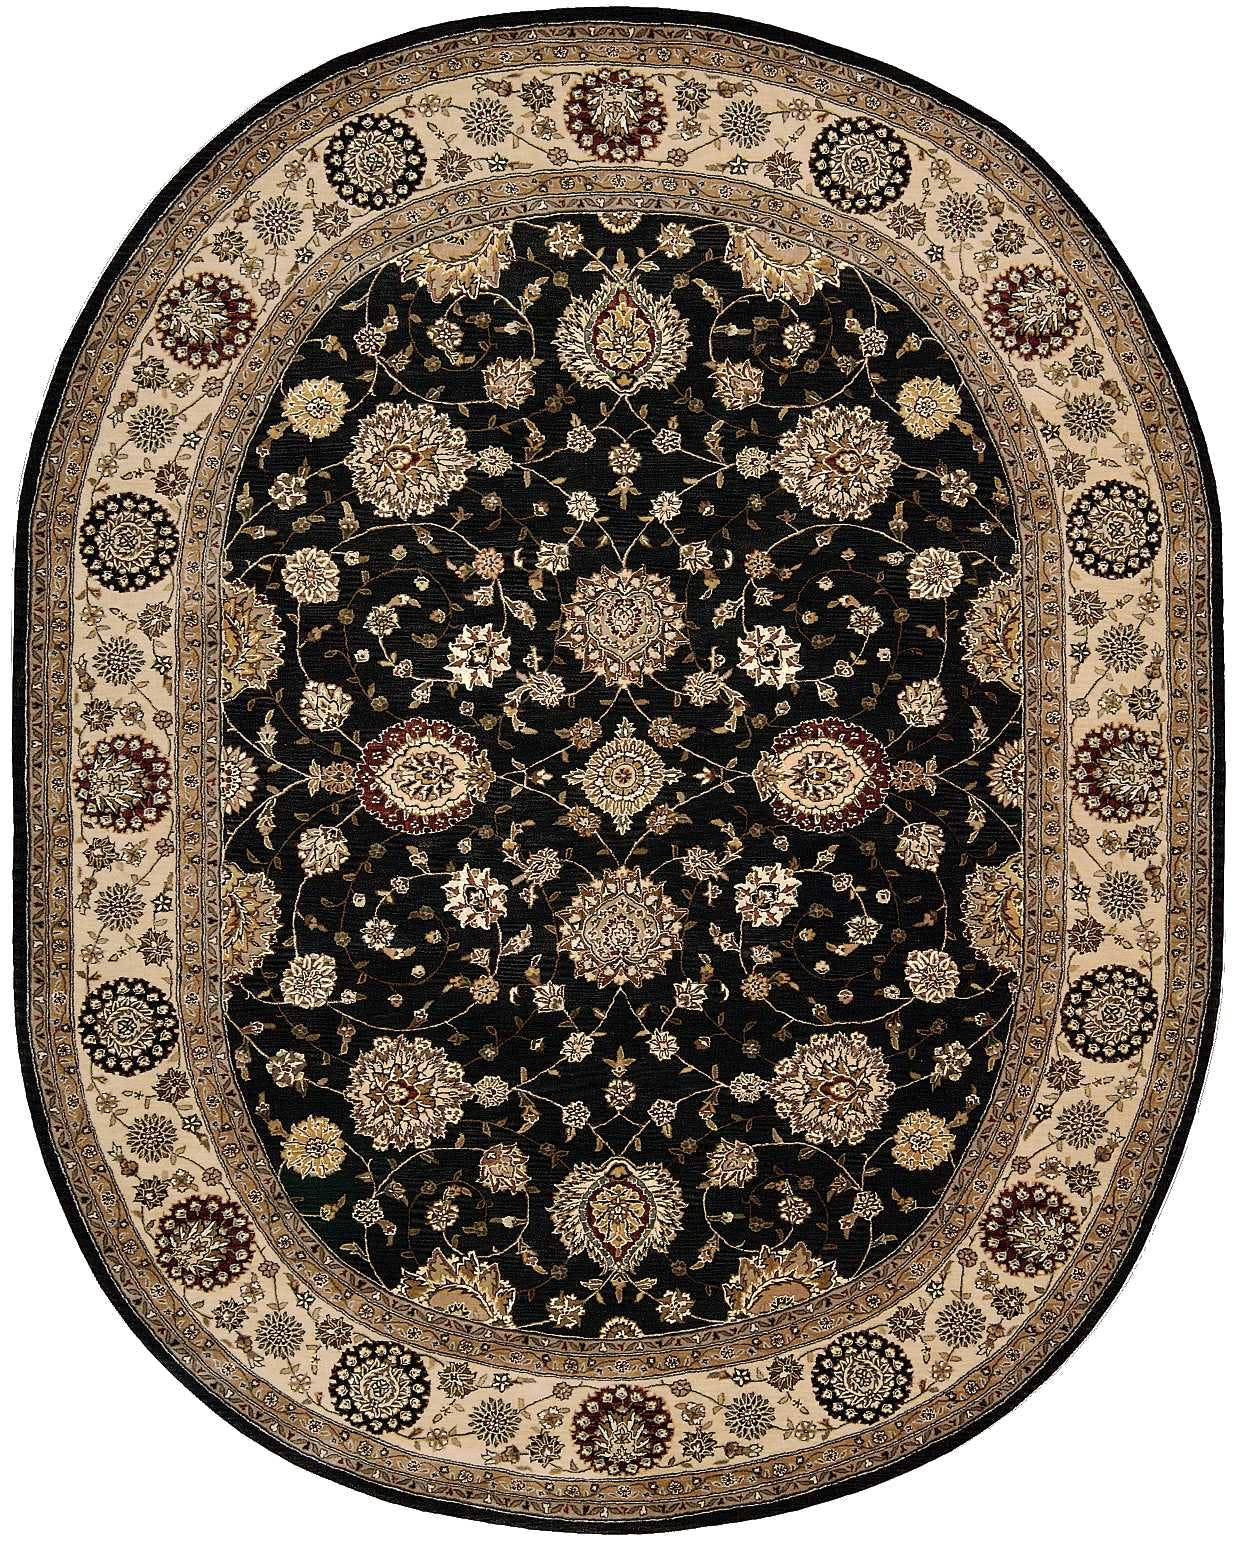 Image of: Nourison Floor Coverings 2000 2204 Navy Blue 10 Oval Area Rug 099446301291 Aminis